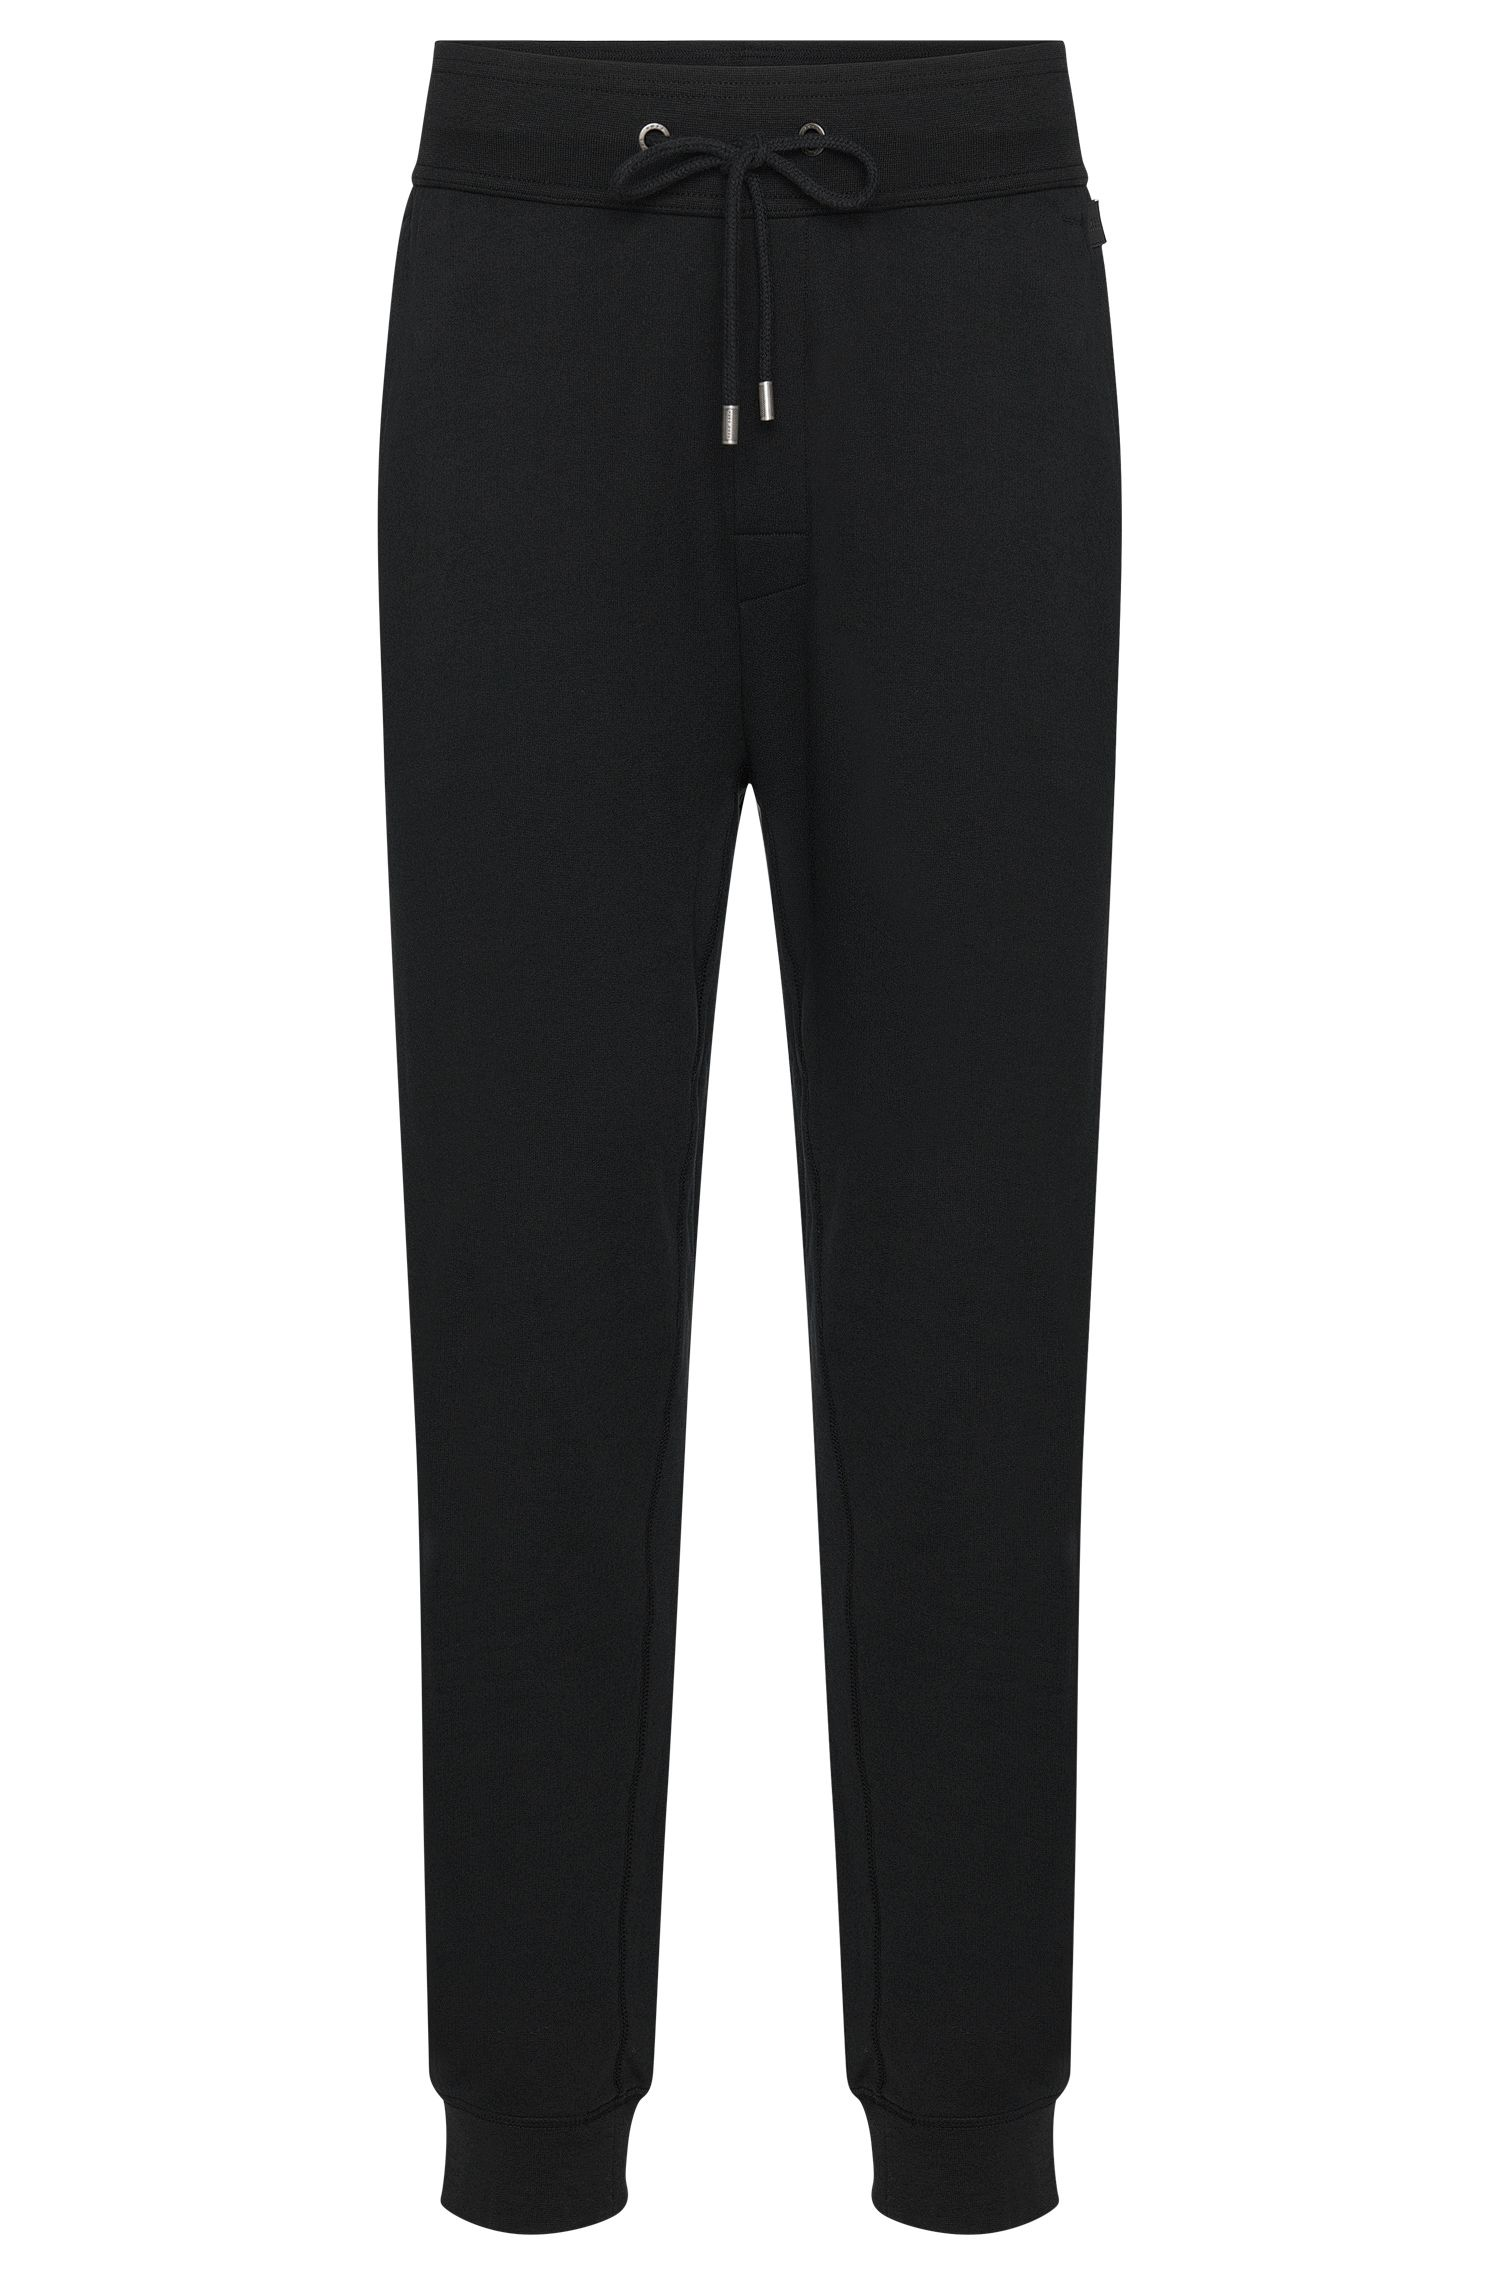 Unifarbene Sweathose aus Baumwolle: 'Long Pant Cuffs'